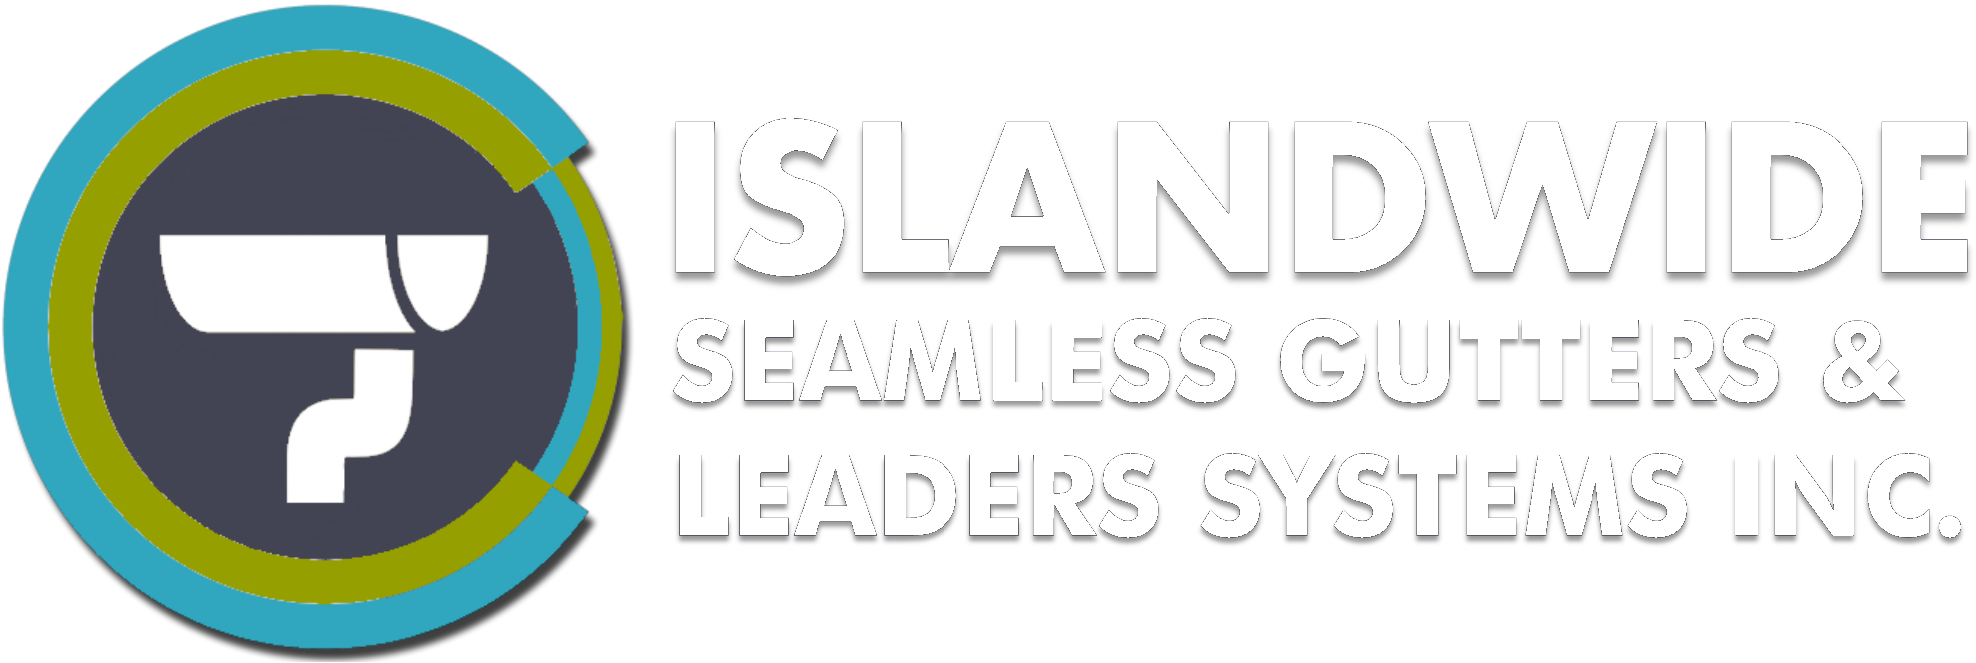 Islandwide Seamless Gutters & Leaders Systems Inc.